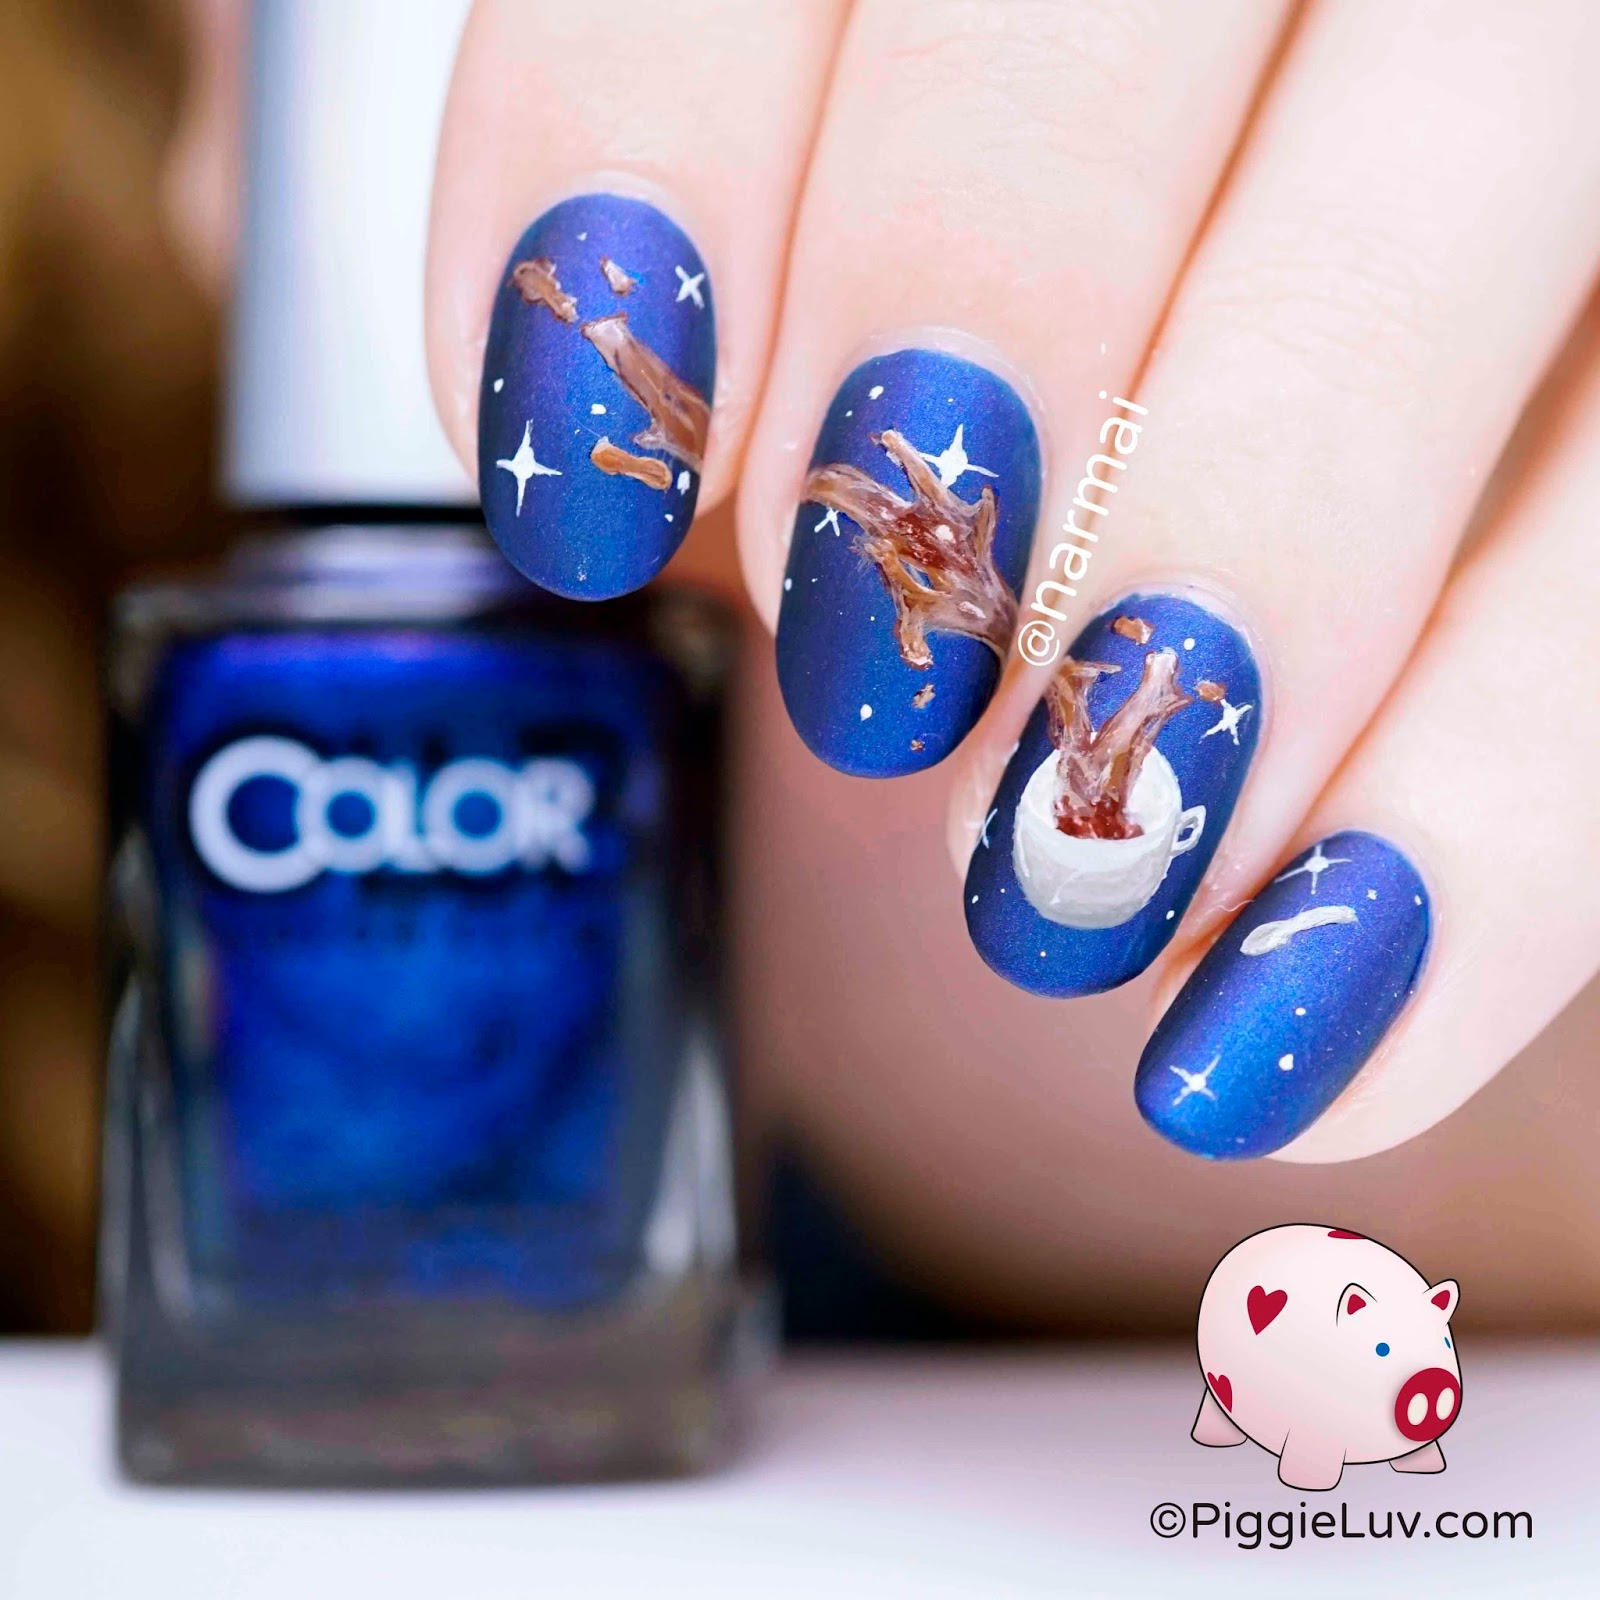 Coffee Art Nails Piggieluv Galaxy Coffee Nail Art From Space